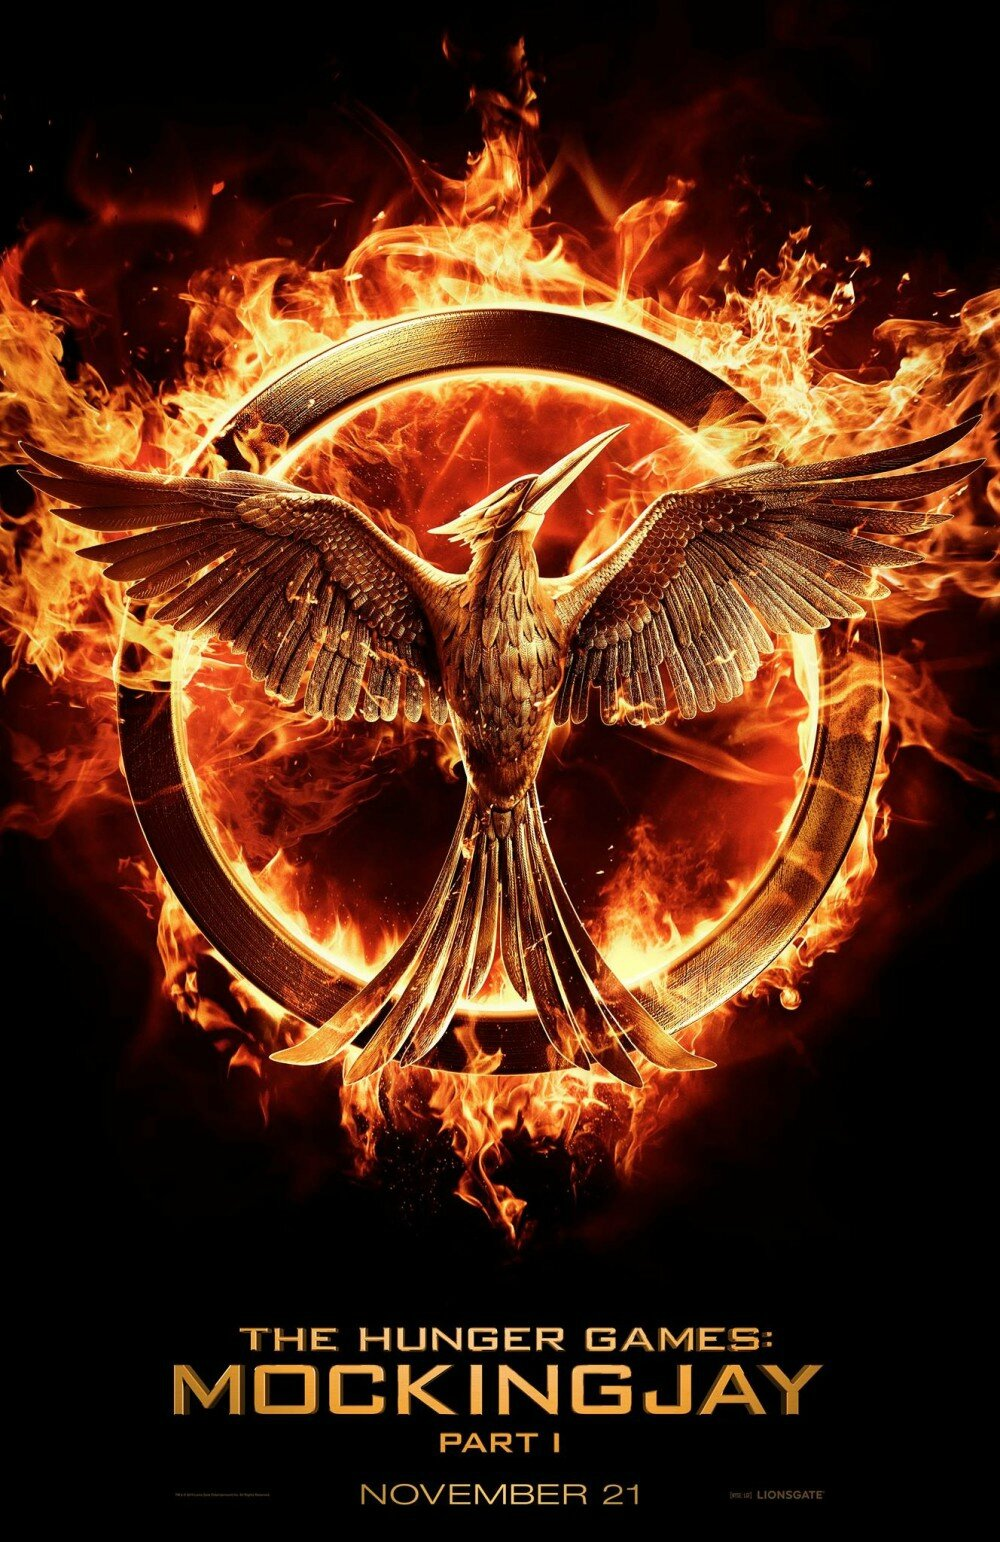 Mockingjay Hunger Games 3 movie poster